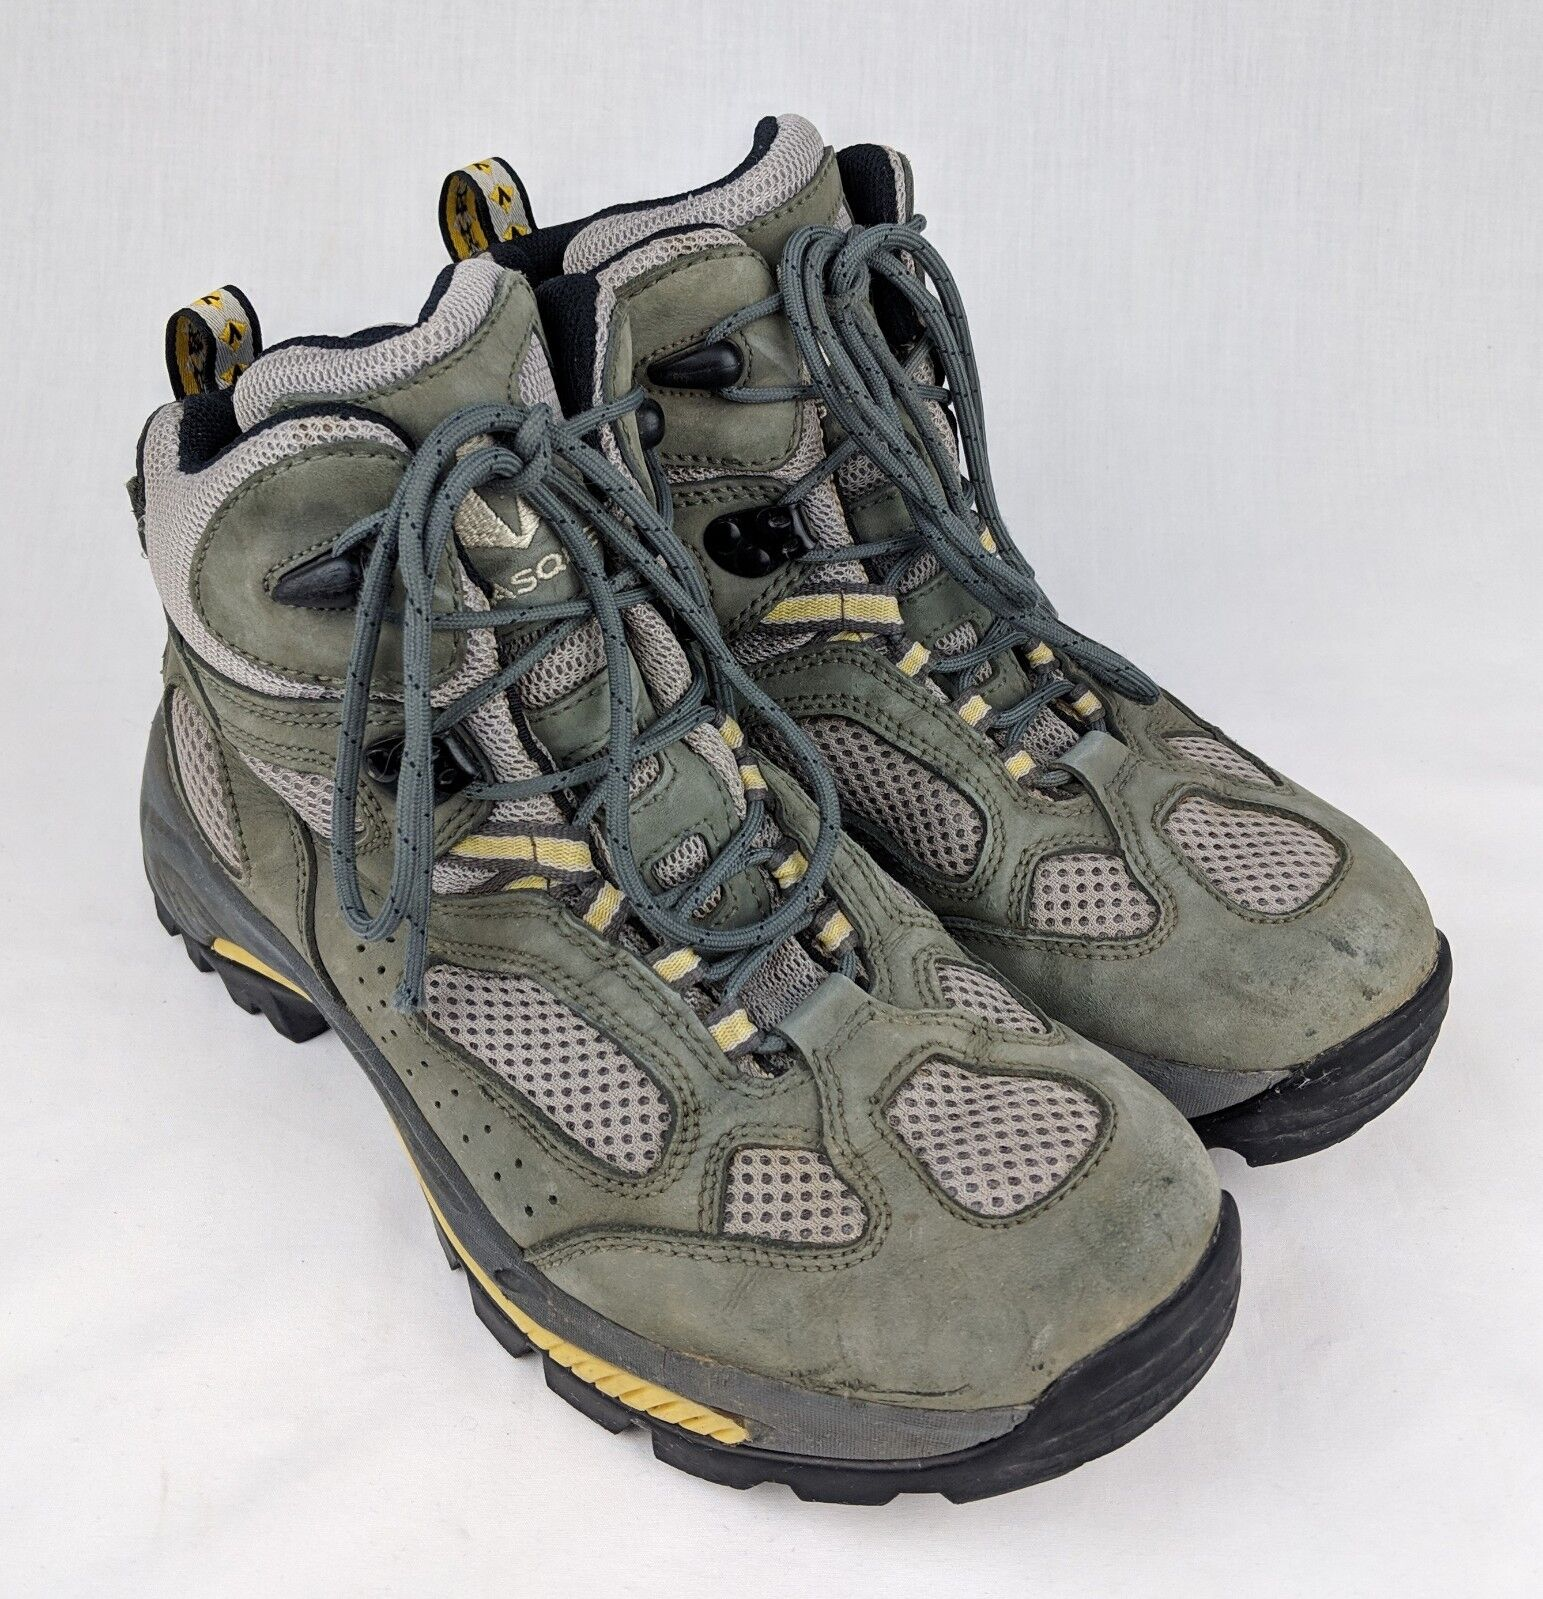 Women's Vasque Breeze III  GTX XCR 7463 Olive G  9M EUC hiking midweight boots  new exclusive high-end